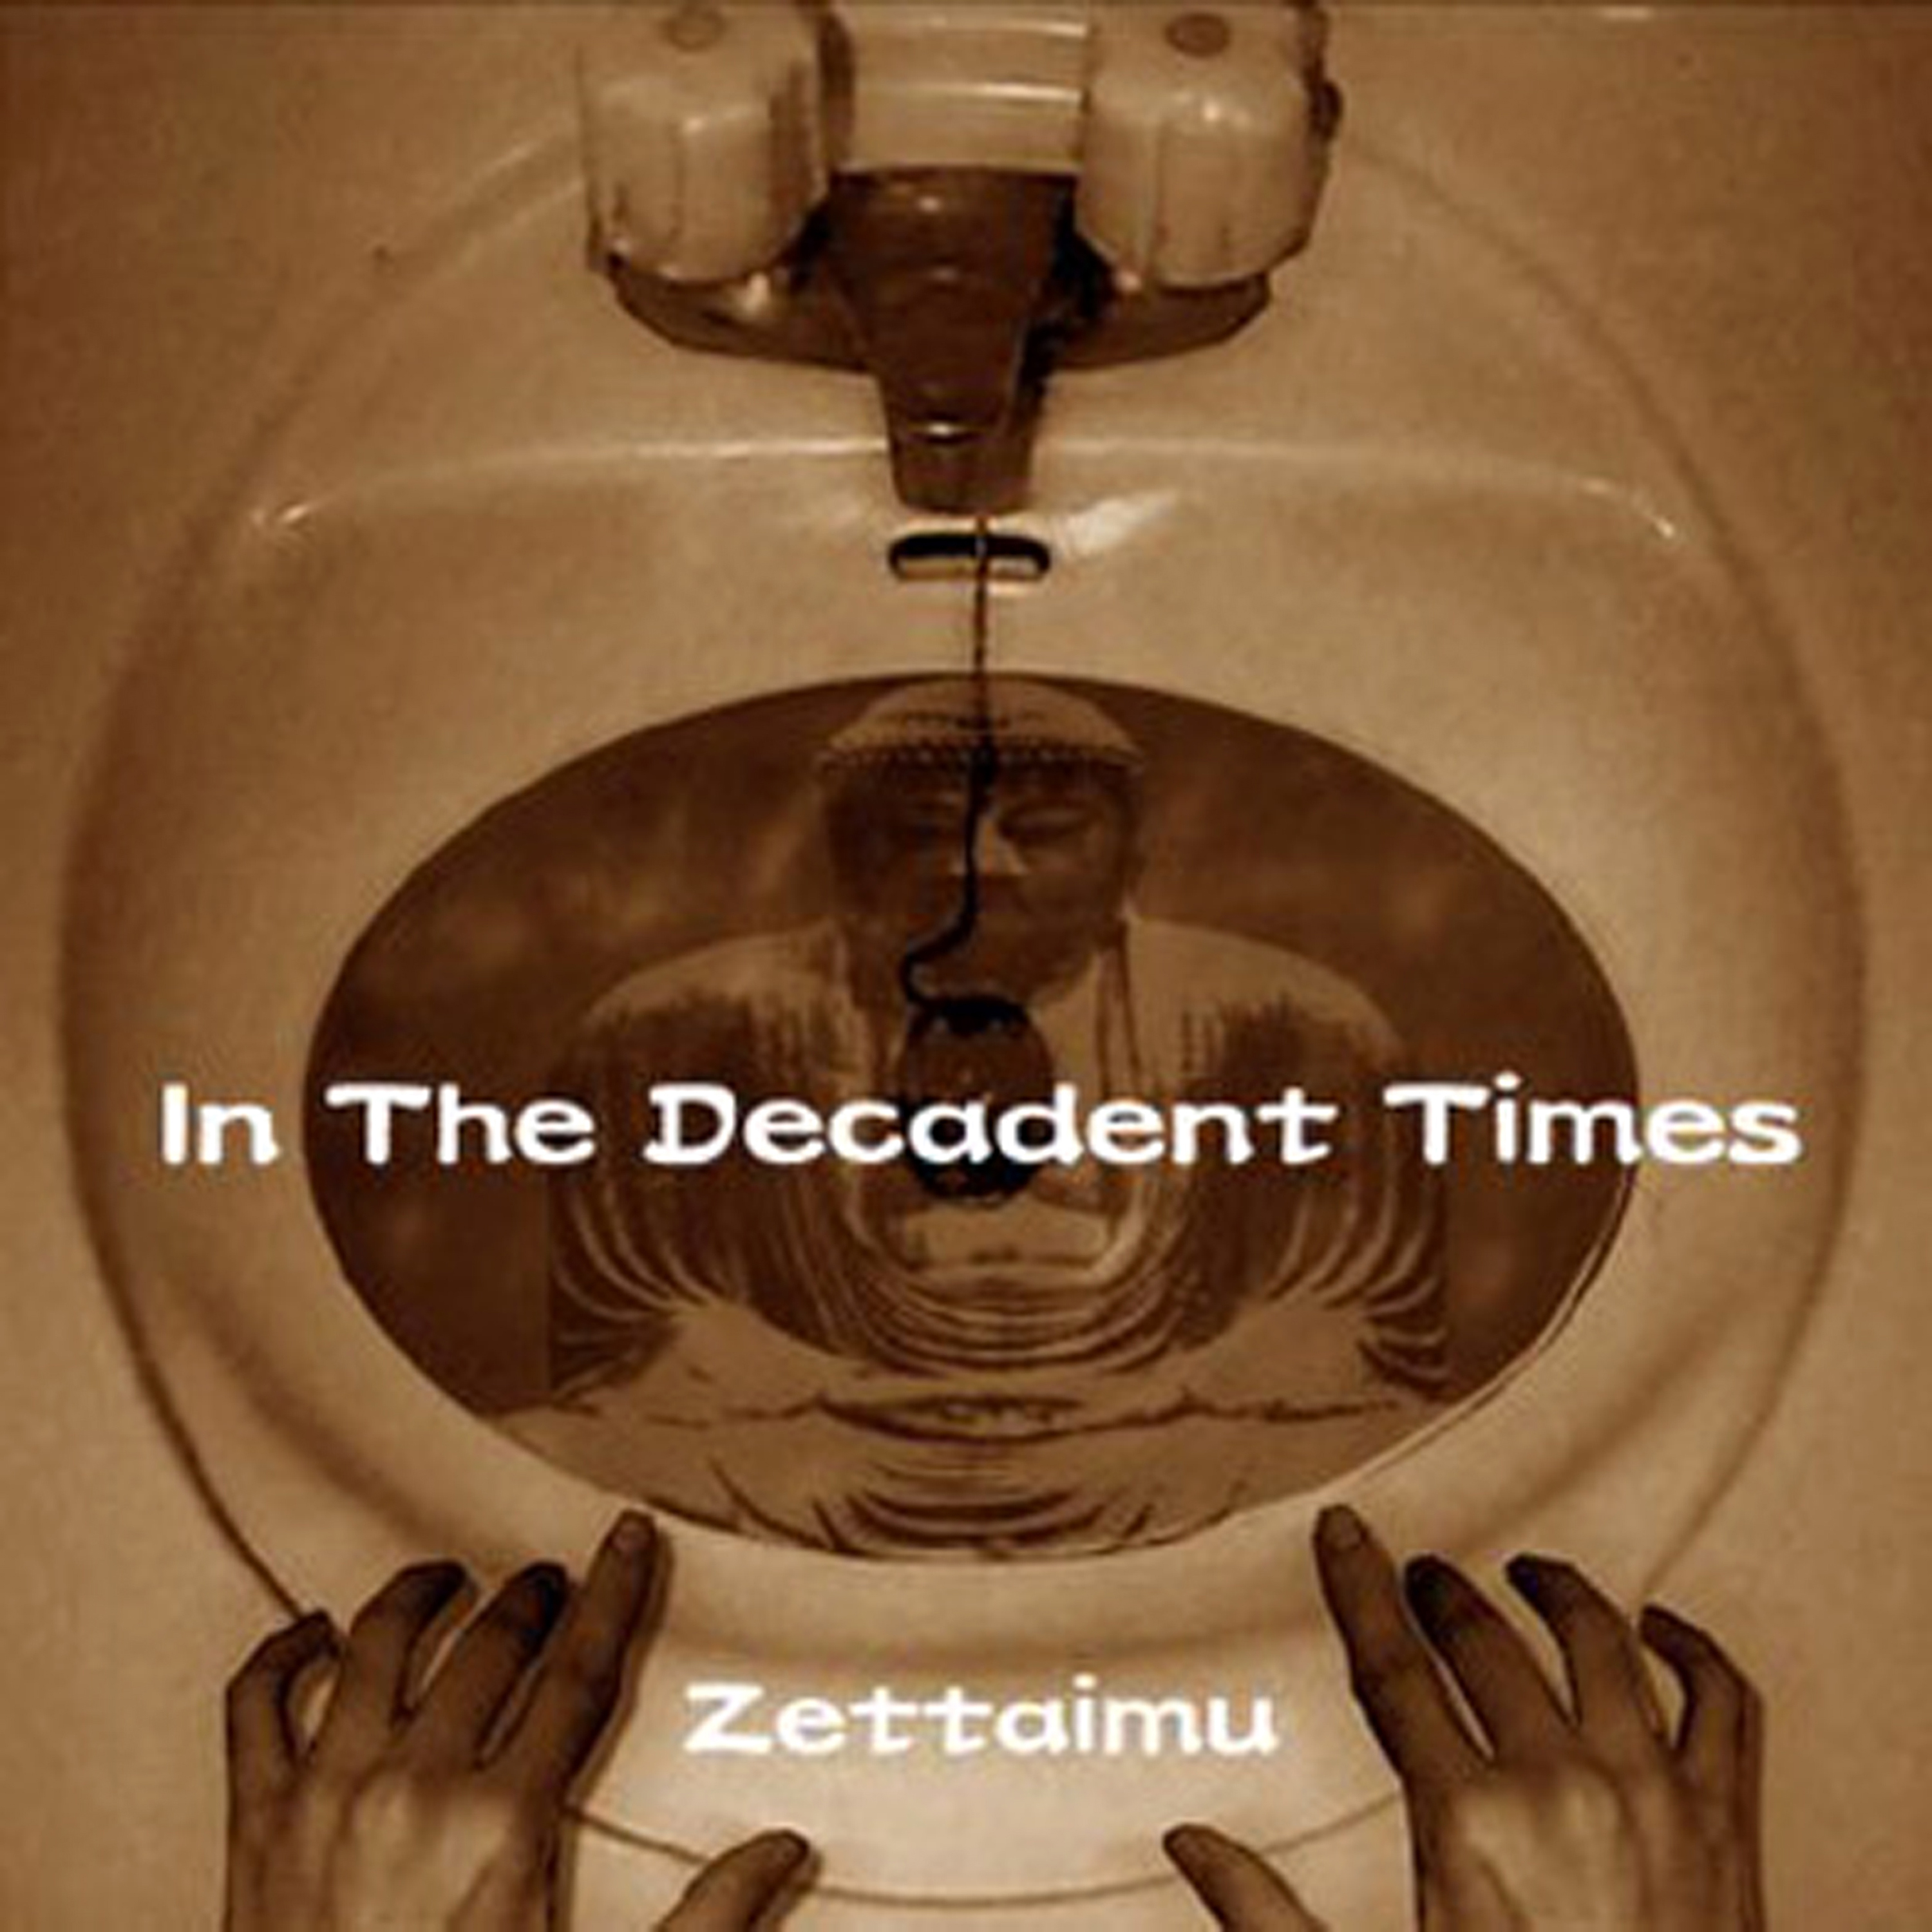 In The Decadent Times - jacket front